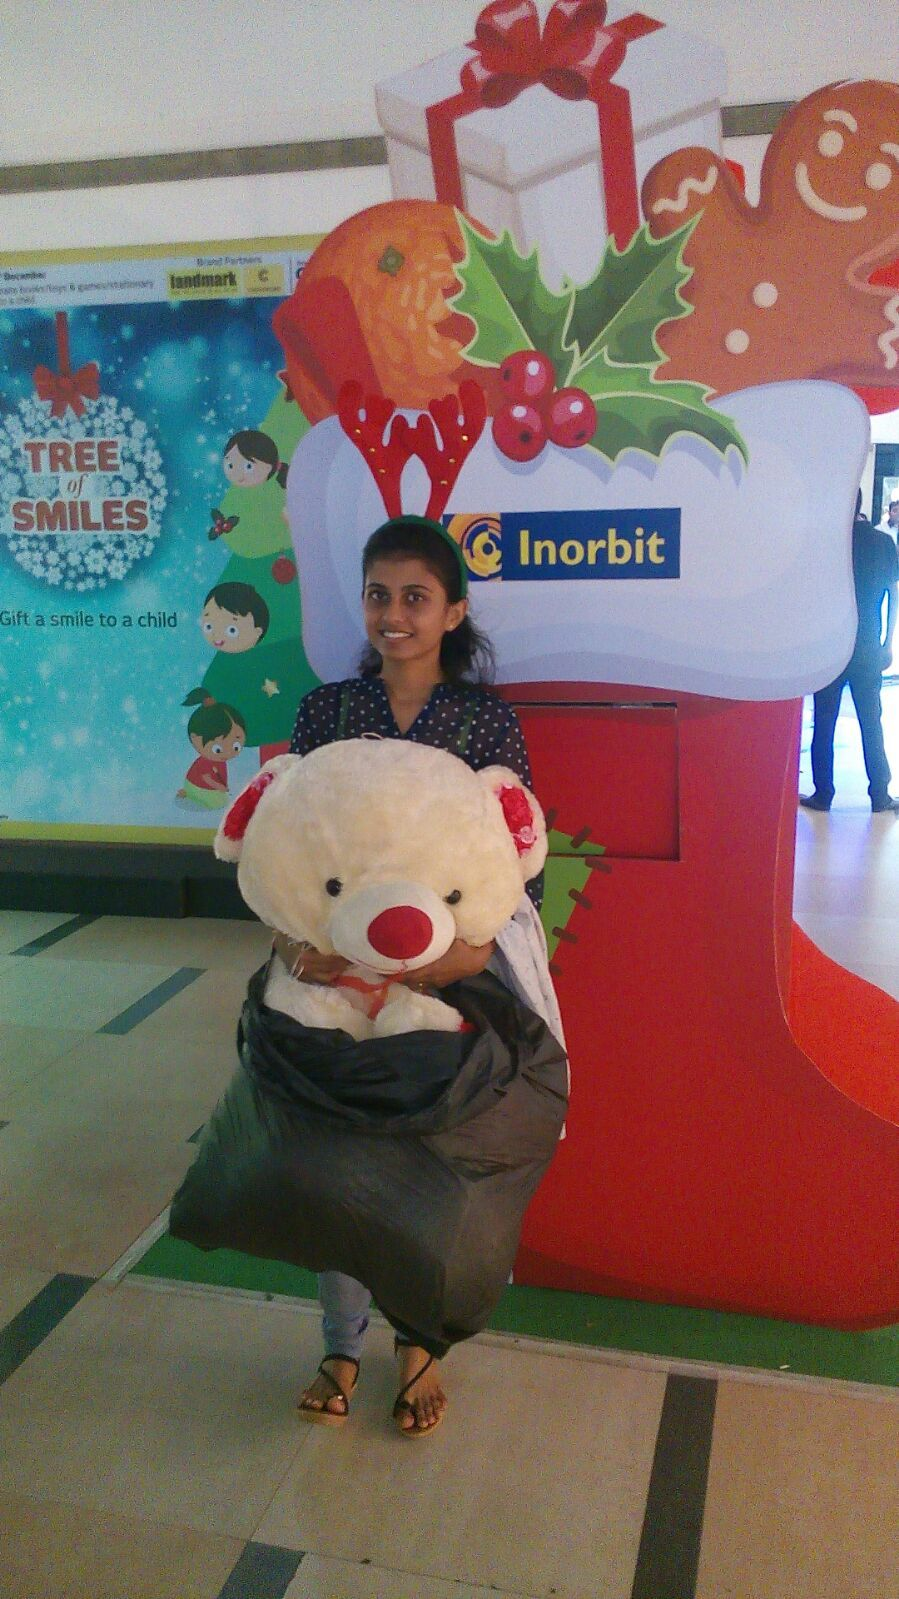 It warms our heart to see Ms Additi play Super Santa to a child #InorbitMakesMeSmile